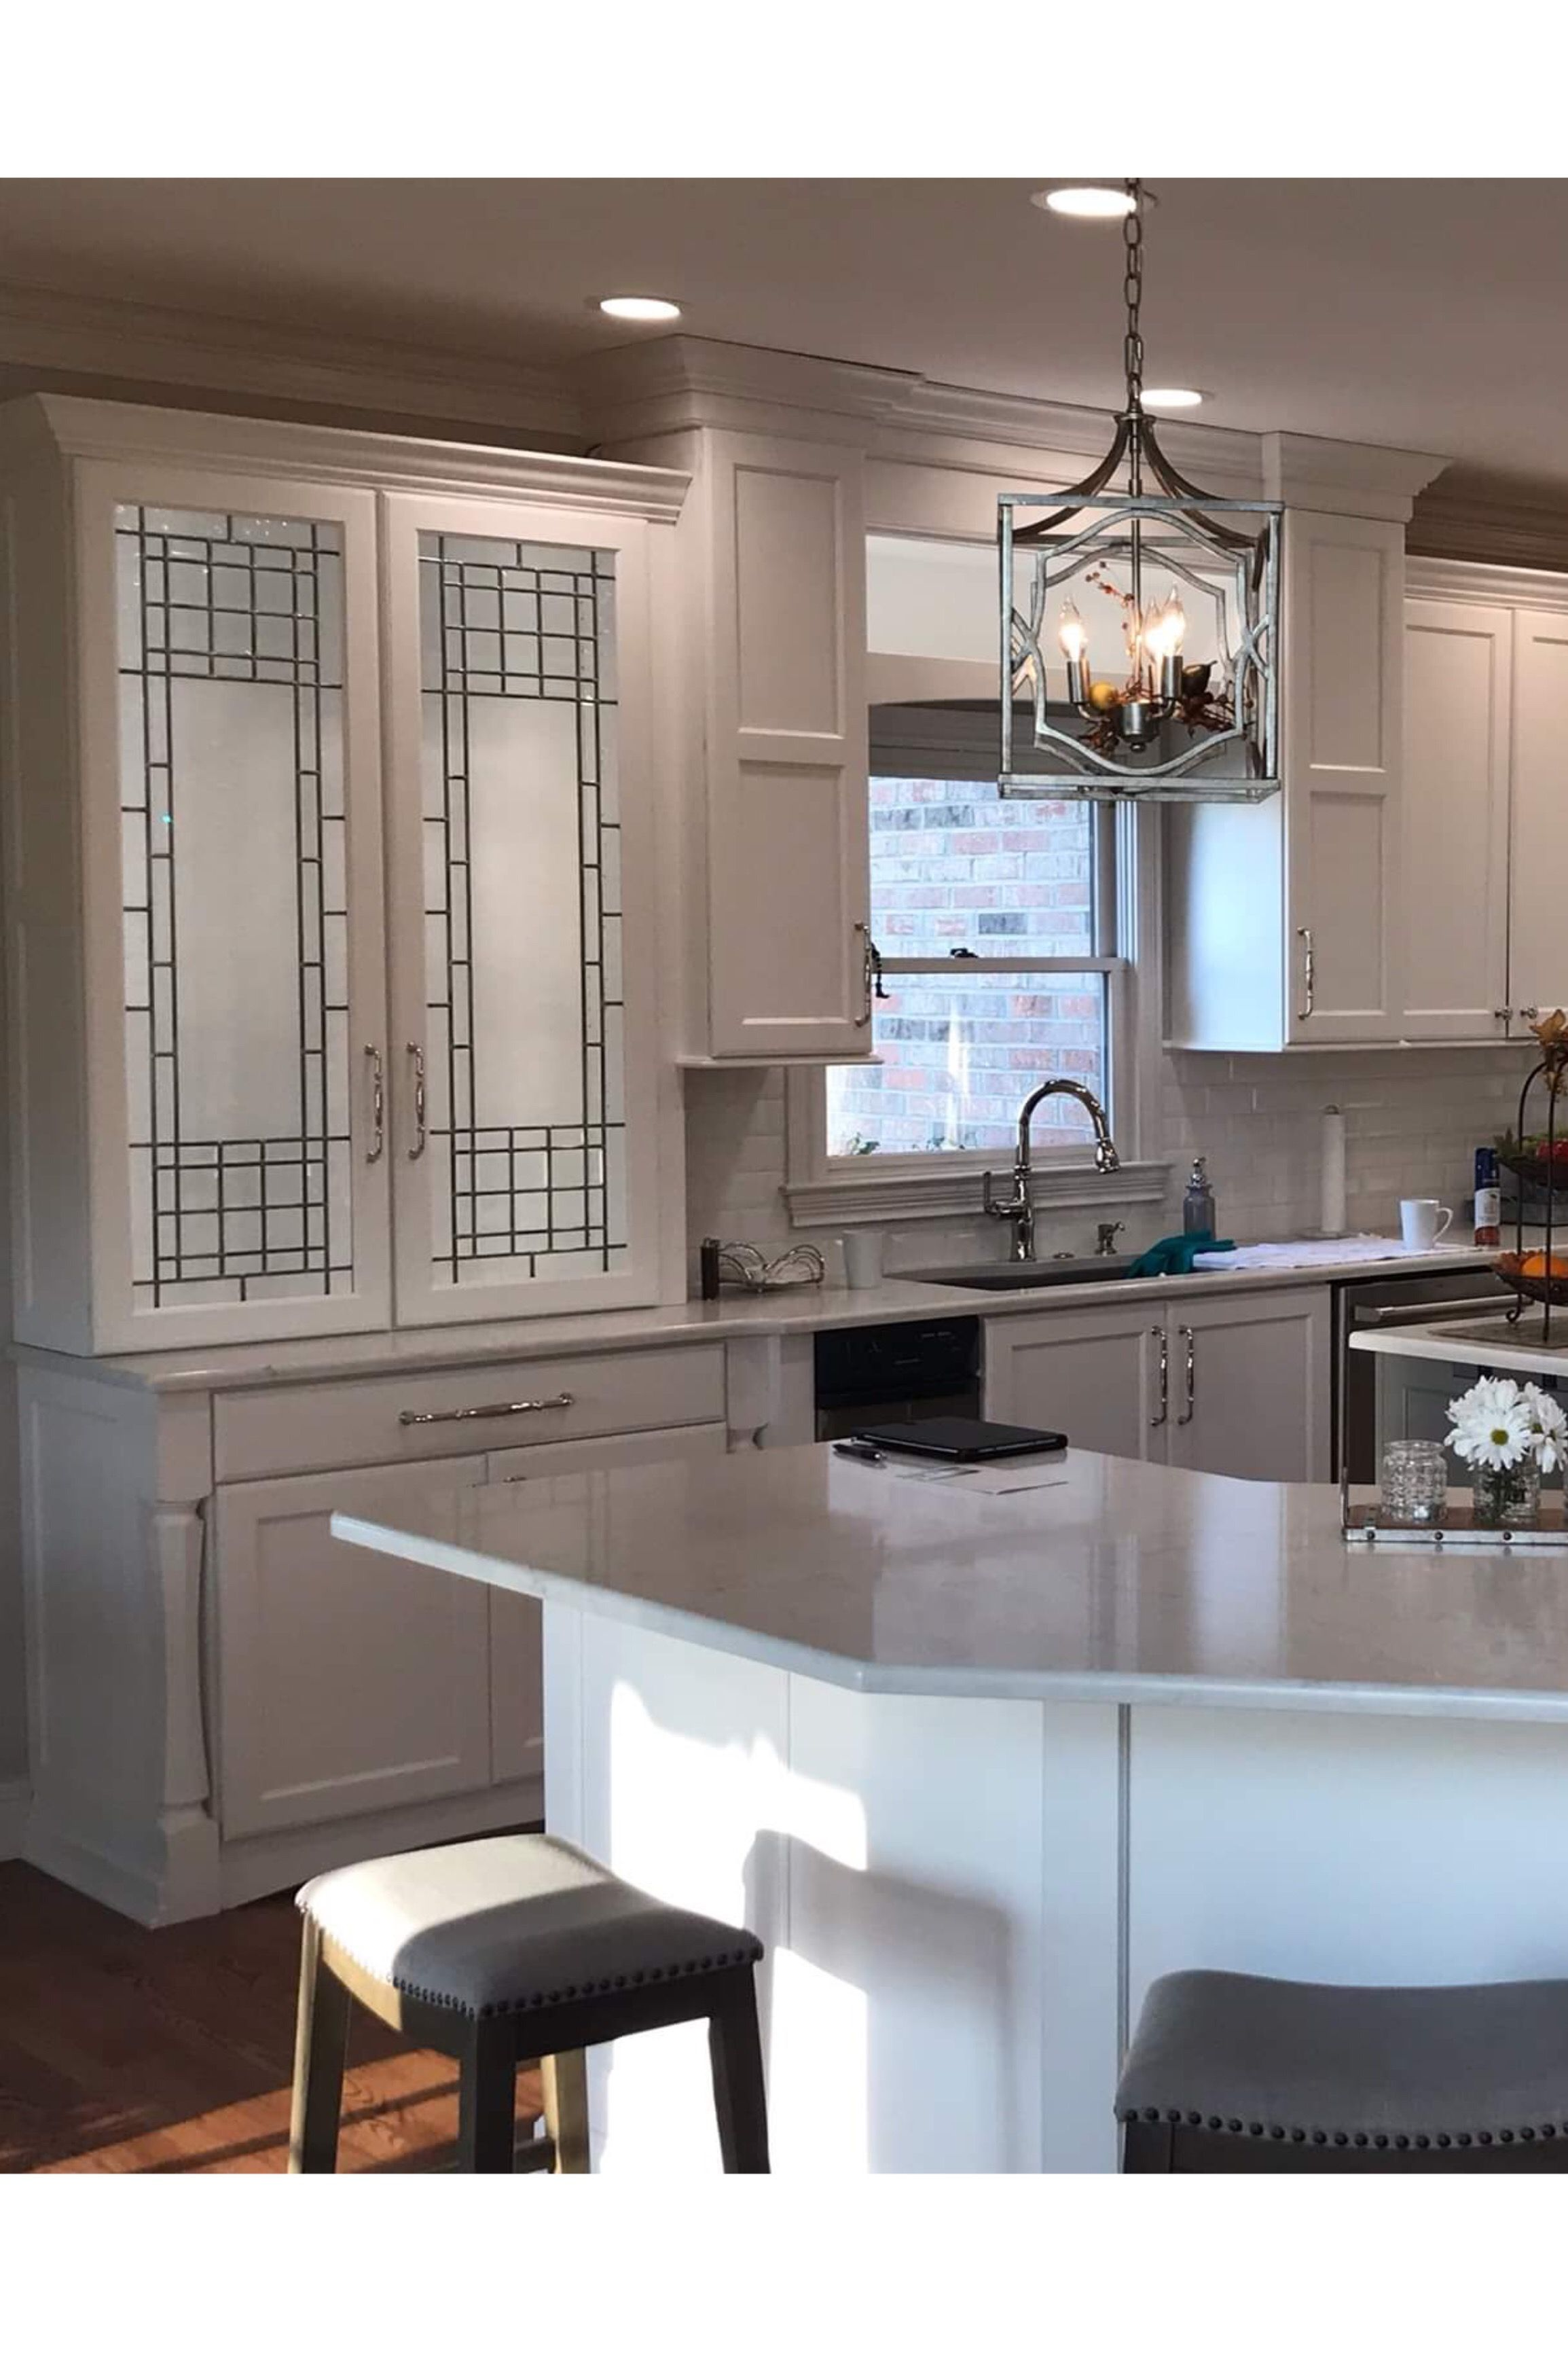 Modern kitchen remodel with leaded glass cabinets by Laura ...